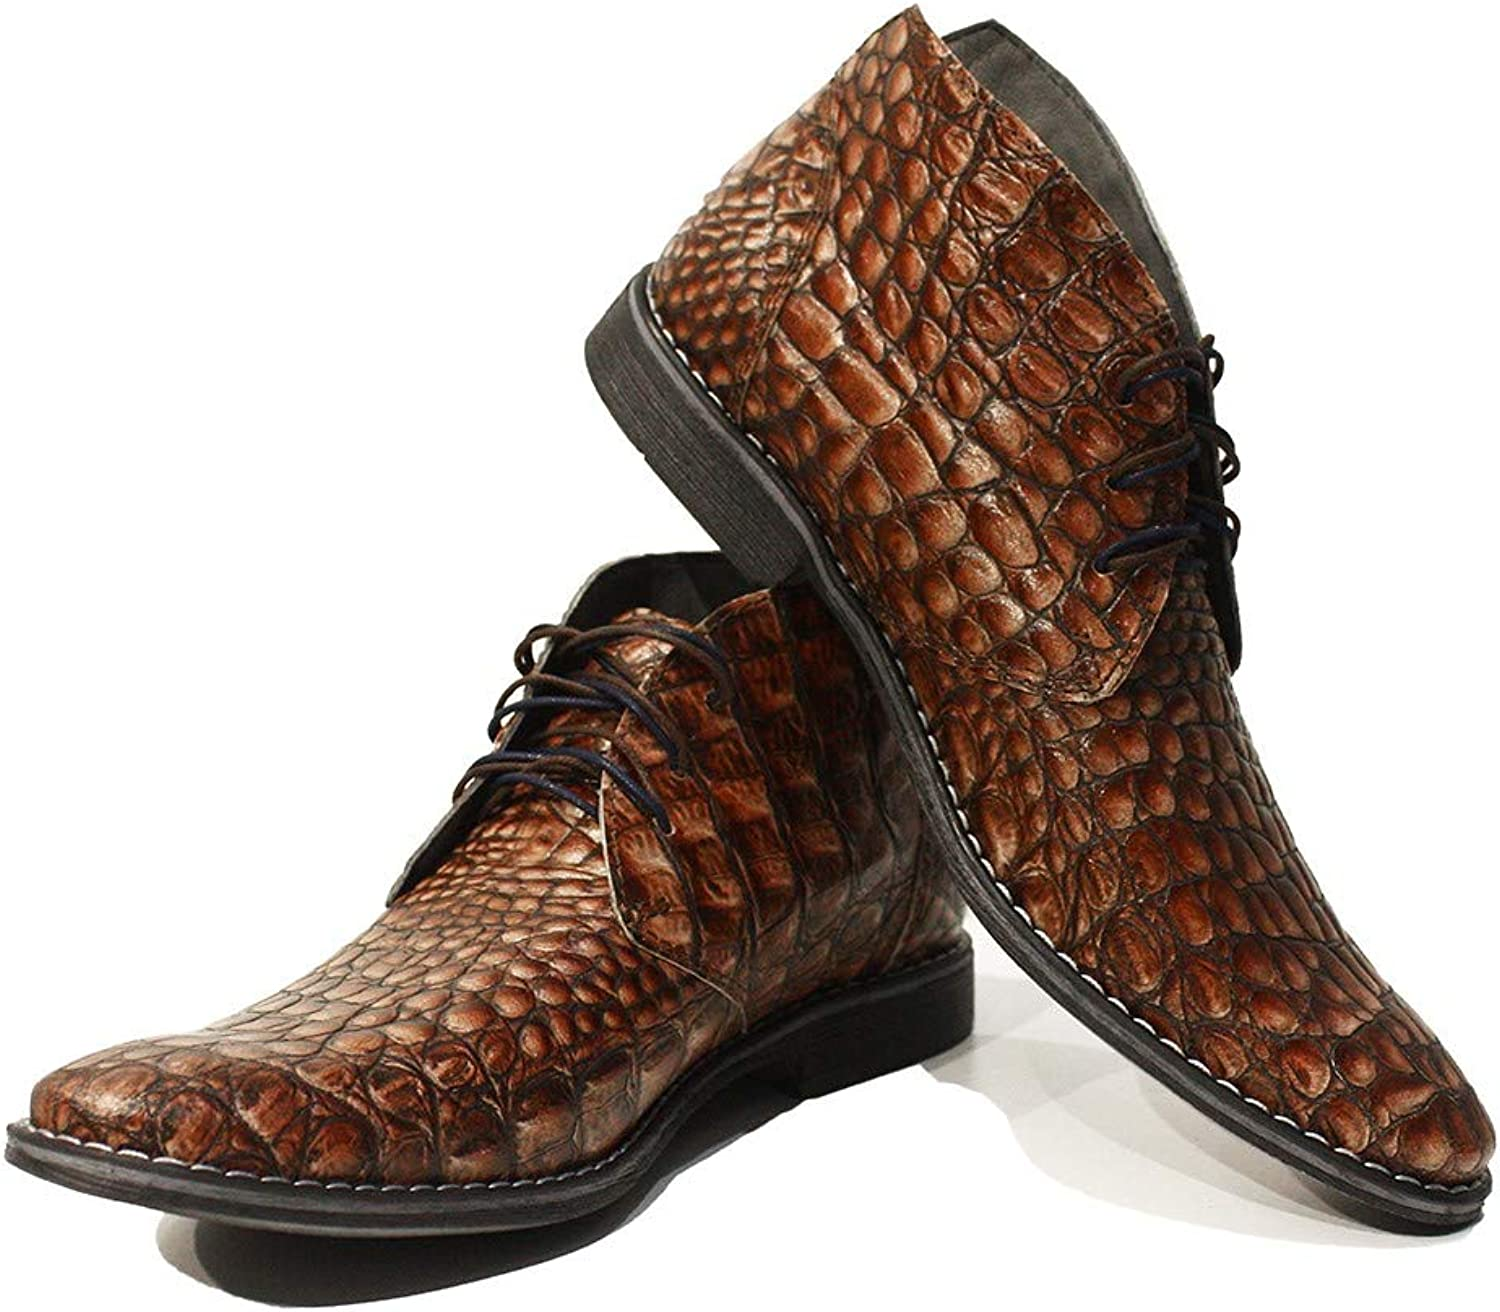 Peppeshoes Modello Umberto - Handmade Italian Leather Mens color Brown Ankle Chukka Boots - Cowhide Embossed Leather - Lace-Up